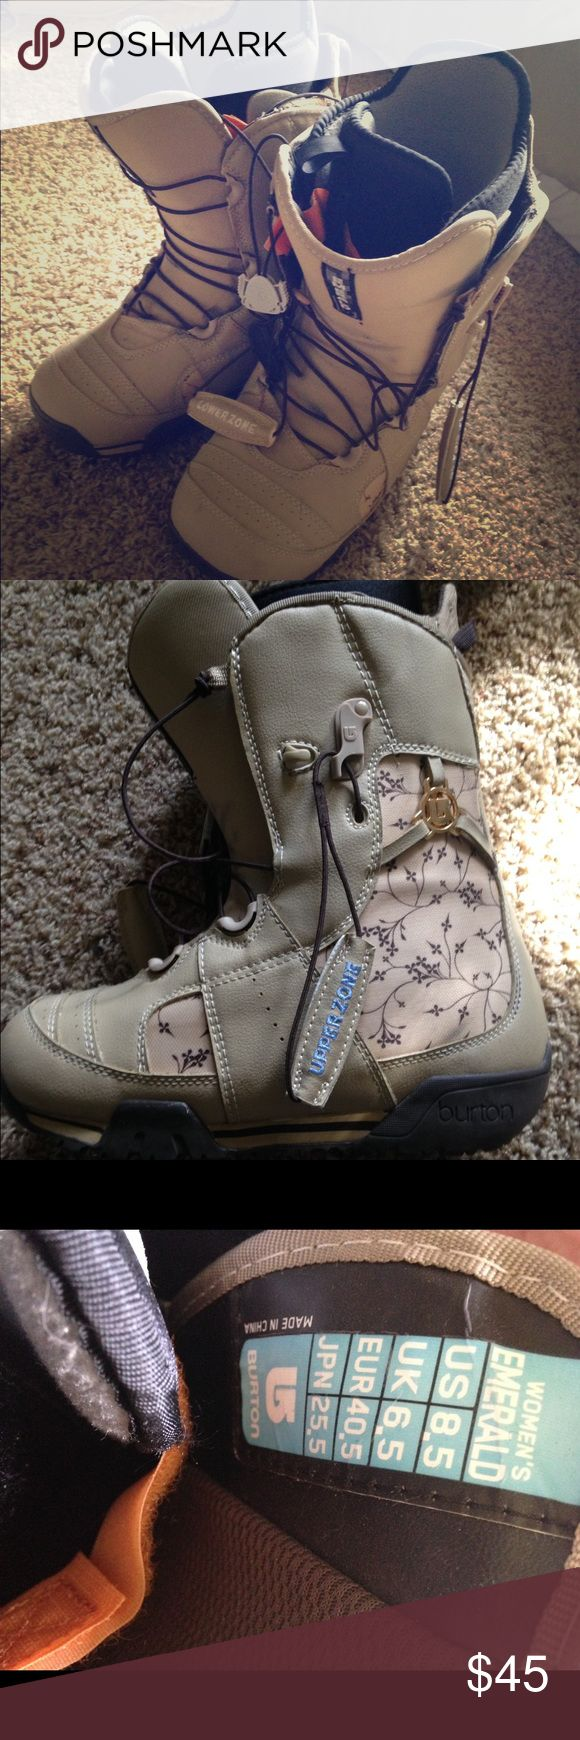 Women's Burton Snowboarding Boots 8.5 Tan and beige snowboarding boots, only worn a handful of times. Size 8.5 and Burton Emerald. Burton Shoes Athletic Shoes